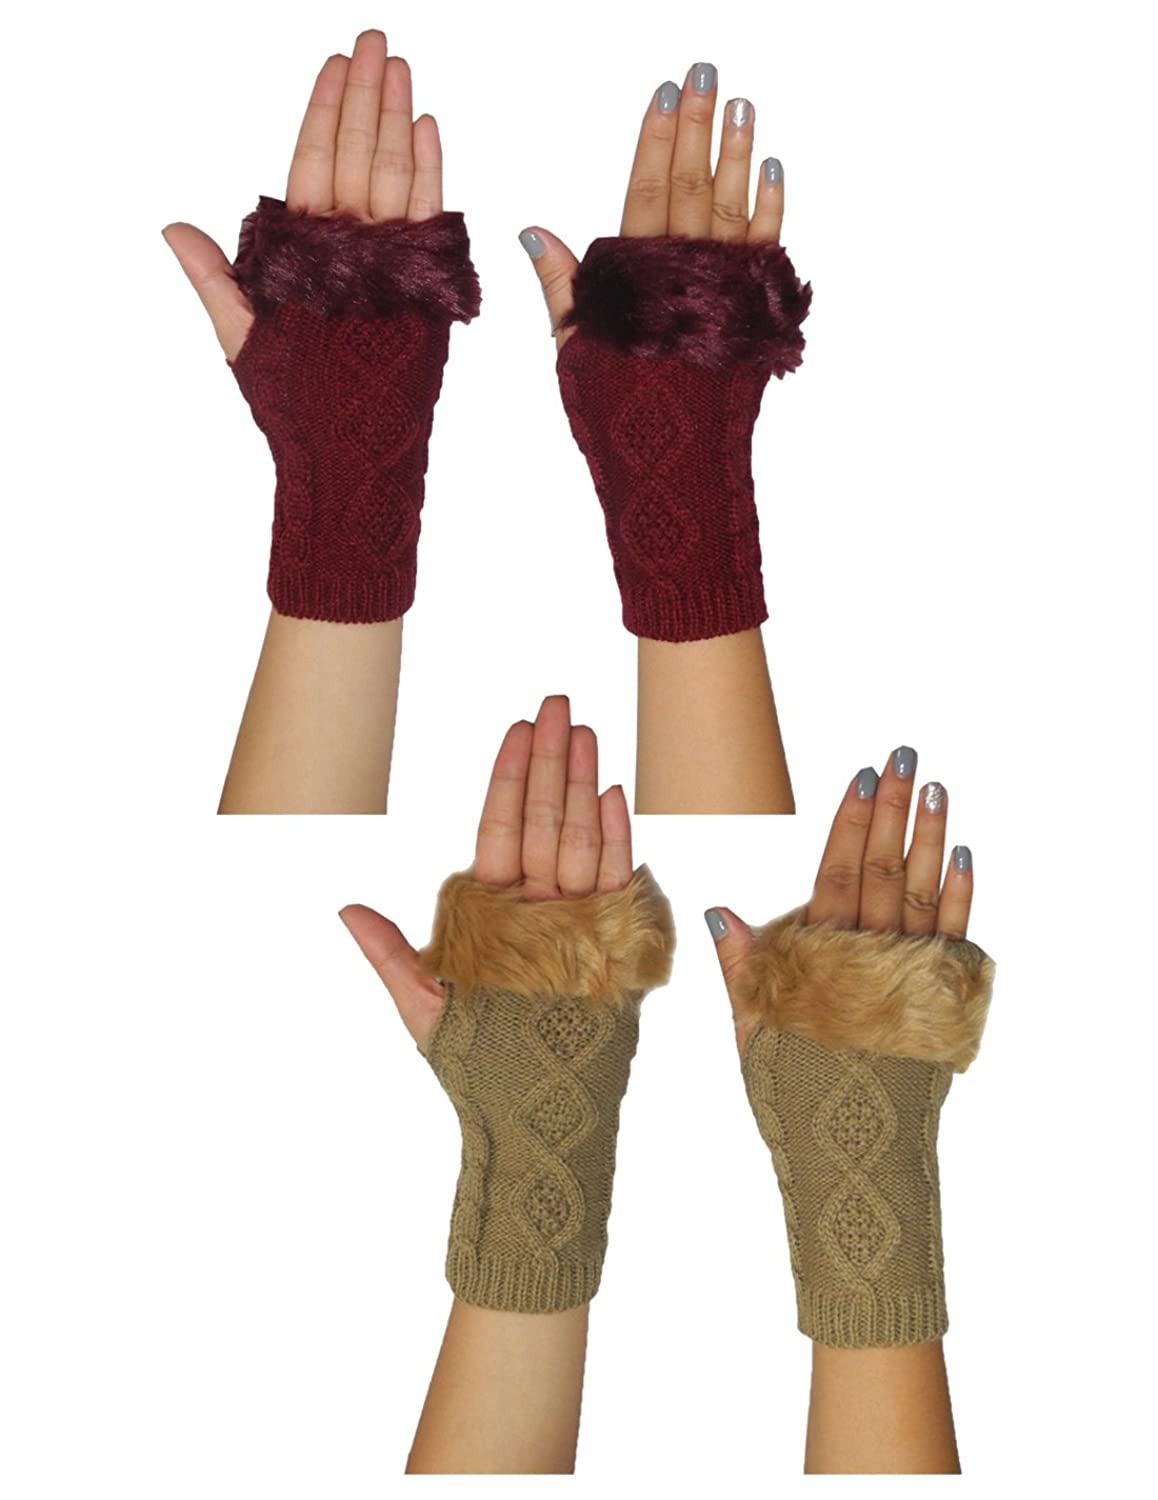 0d58e0d0d1e (Pack of 2) Womens Warm Winter Knitted Fingerless Gloves with Fluffy Faux  Fur